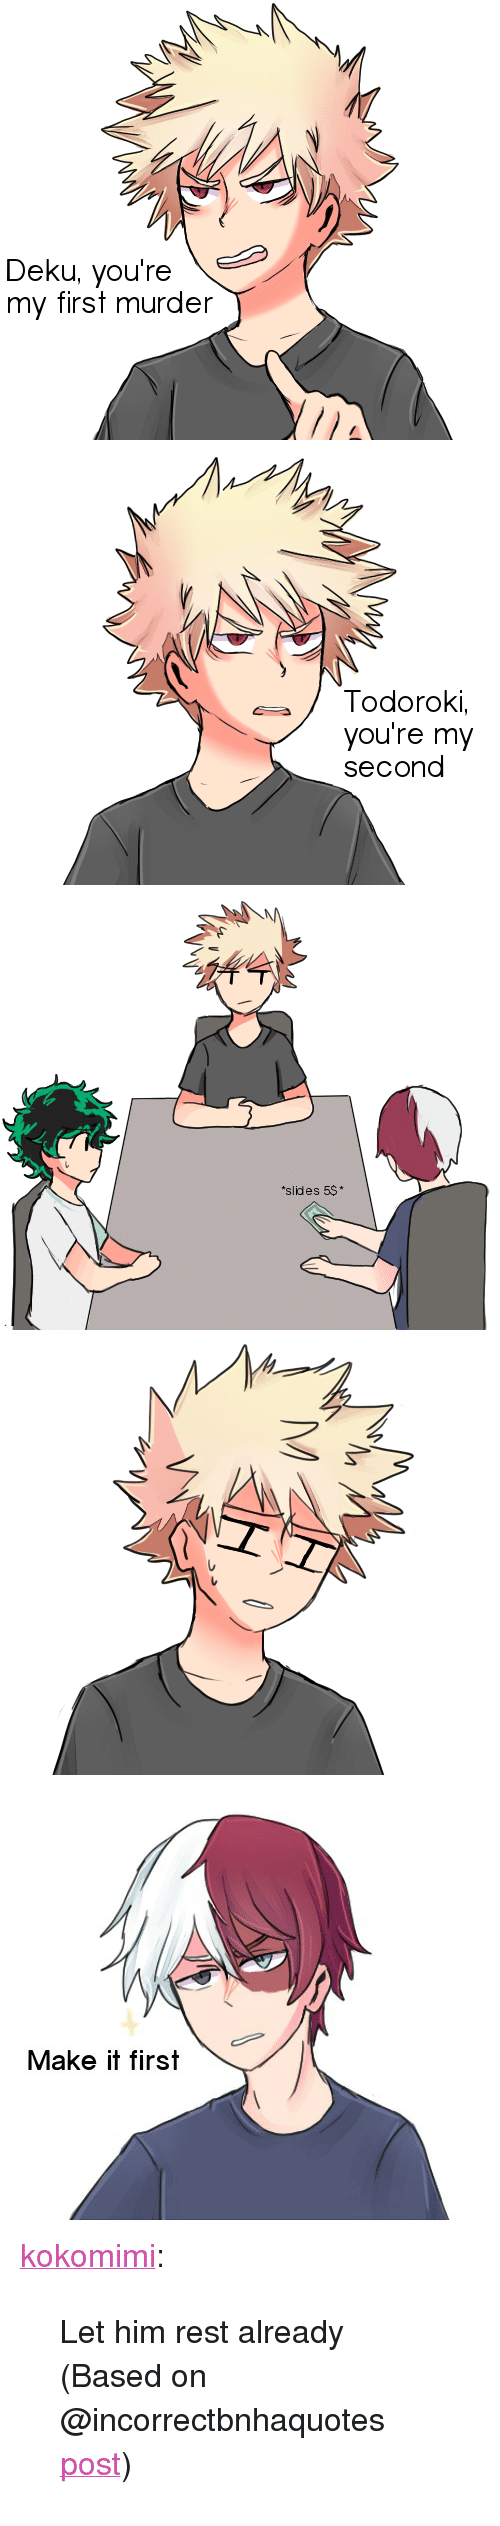 """Tumblr, Blog, and Http: Deku, you're  my first murder   / Todoroki,  you're my  second   slides 5$   しし   Make it first <p><a href=""""http://kokomimi.tumblr.com/post/172320170473/let-him-rest-already-based-on"""" class=""""tumblr_blog"""">kokomimi</a>:</p>  <blockquote><p>Let him rest already</p><p>(Based on @incorrectbnhaquotes <a href=""""https://incorrectbnhaquotes.tumblr.com/post/166501275534/bakugou-deku-youre-my-first-murder-bakugou"""">post</a>)</p></blockquote>"""